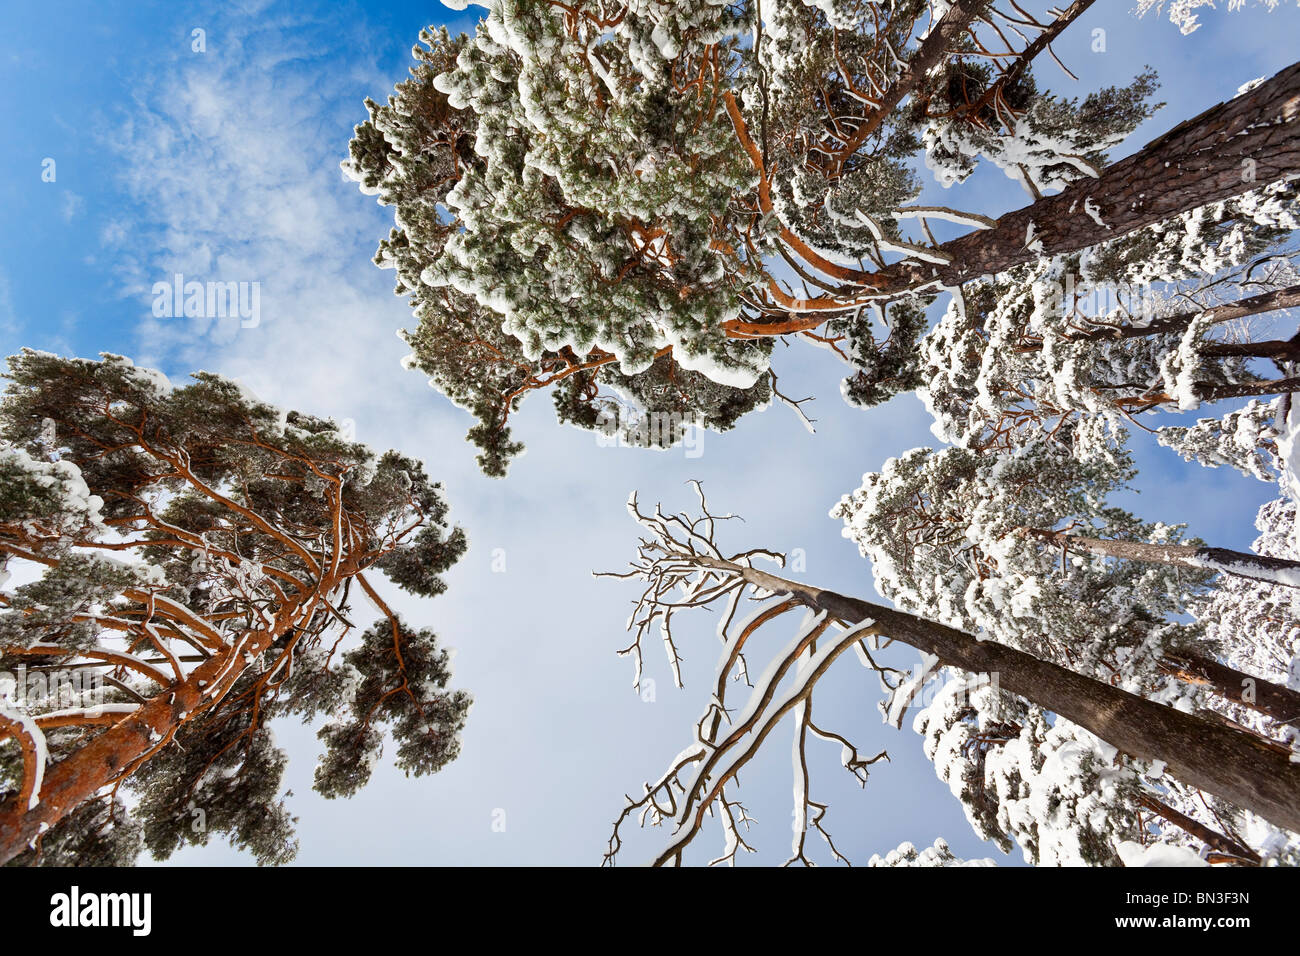 Snow-covered Scots Pines (Pinus sylvestris), Berchtesgadener Land,  Germany, worm's-eye view - Stock Image